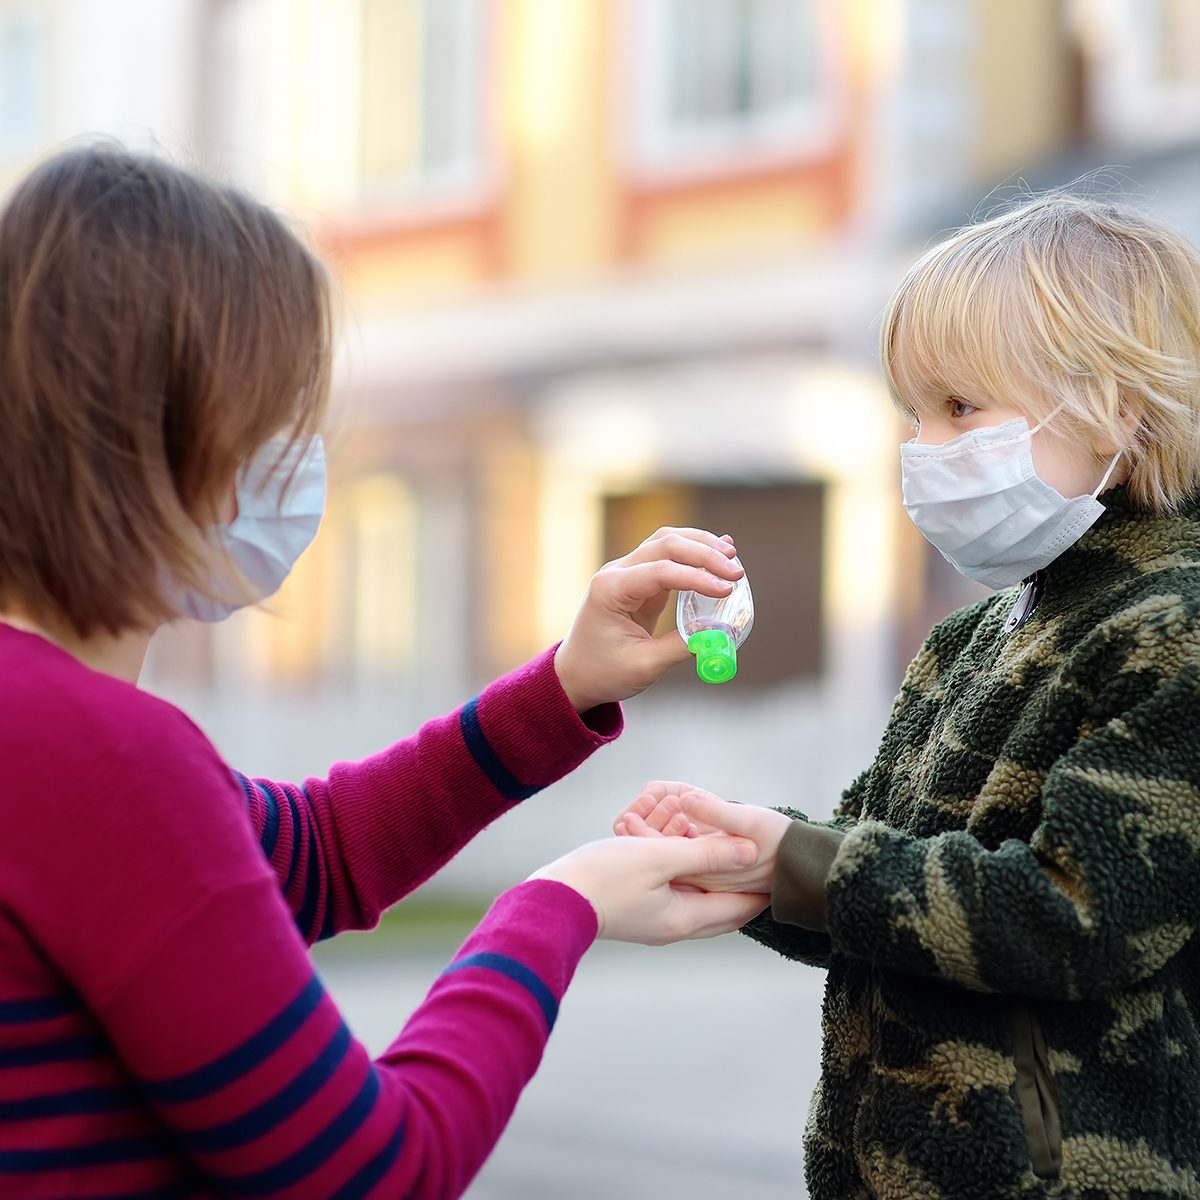 Young woman and little child wearing protective mask makes disinfection of hands with sanitizer in airport, supermarket or other public place. Safety during COVID-19 outbreak. Epidemic of virus covid